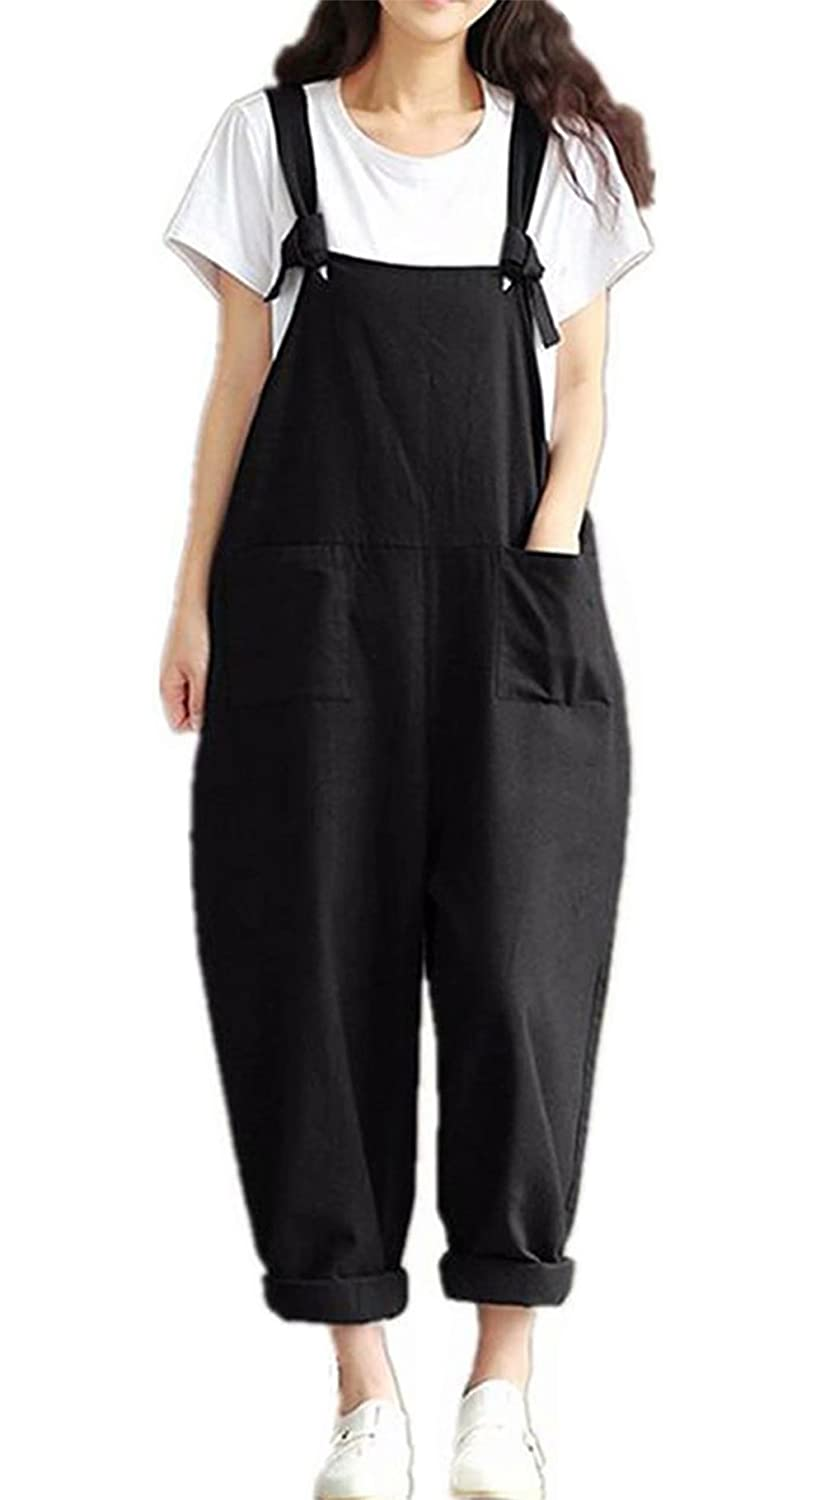 103a84b19ba Amazon.com  MNLYBABY Womens Casual Loose Bib Baggy Overalls Jumpsuit Pants  Plus Size Sleeveless Wide Leg Romper  Clothing